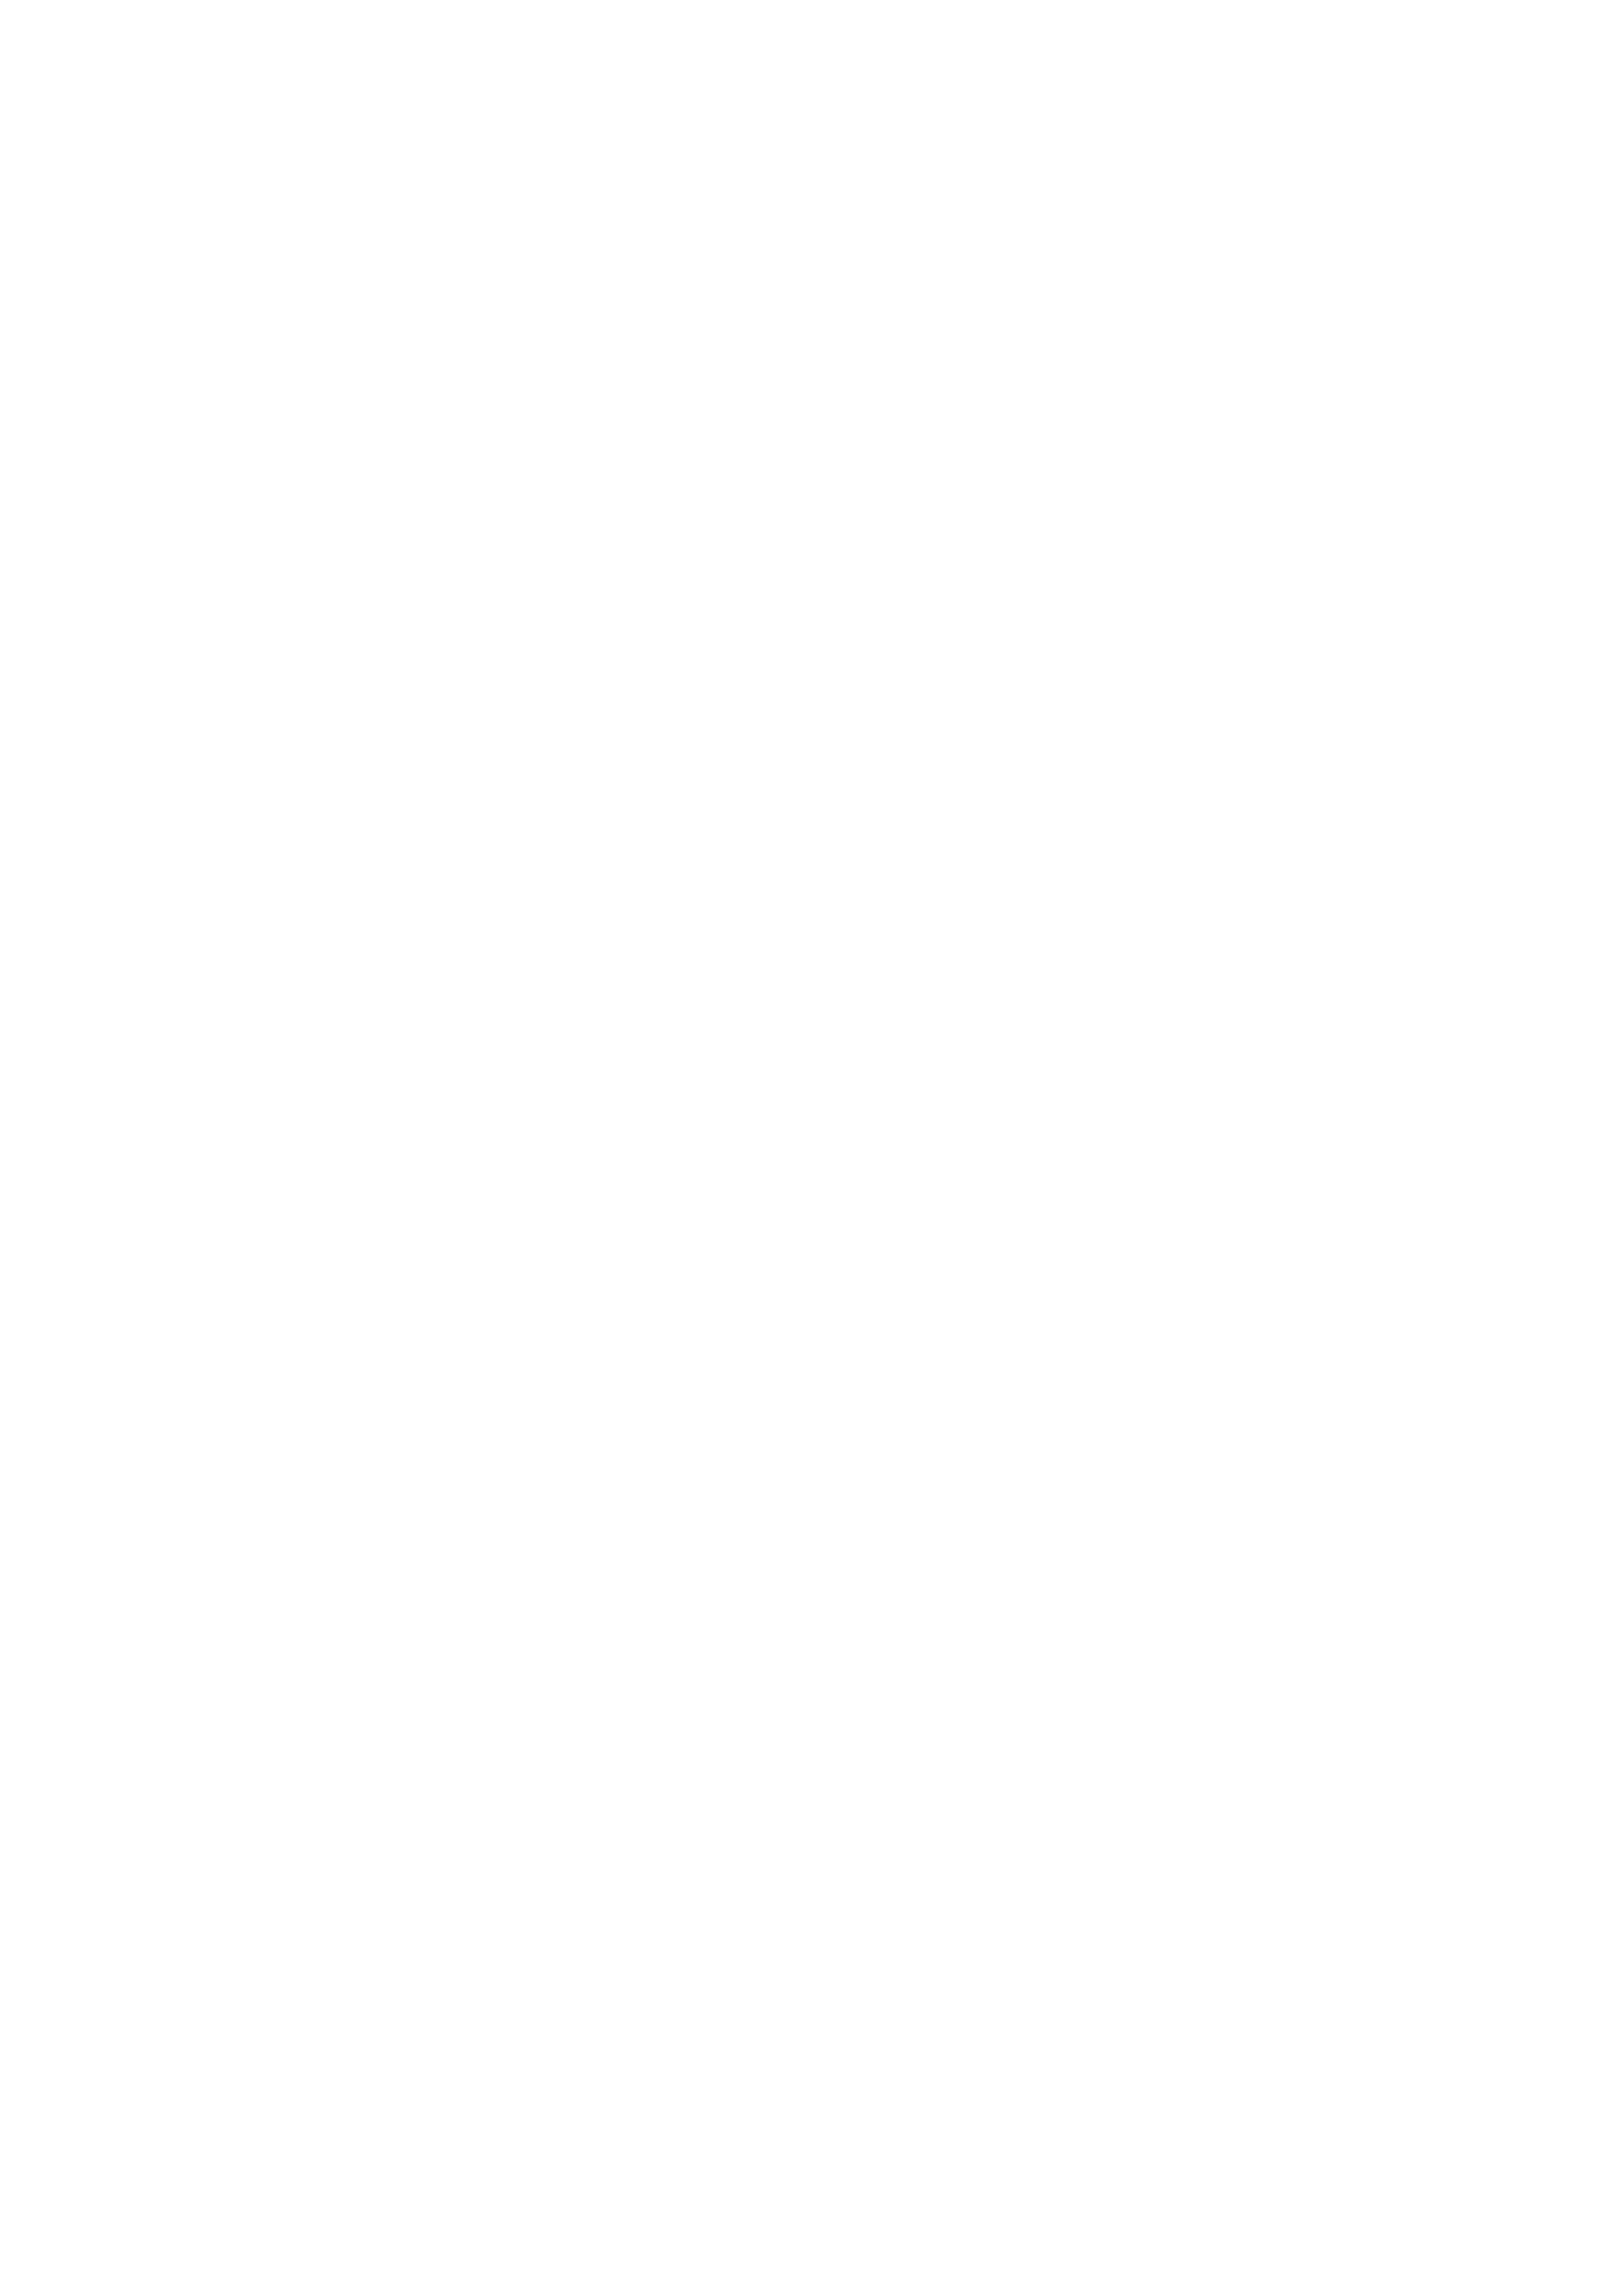 Limited Restock. The United Pack. Shop Now.